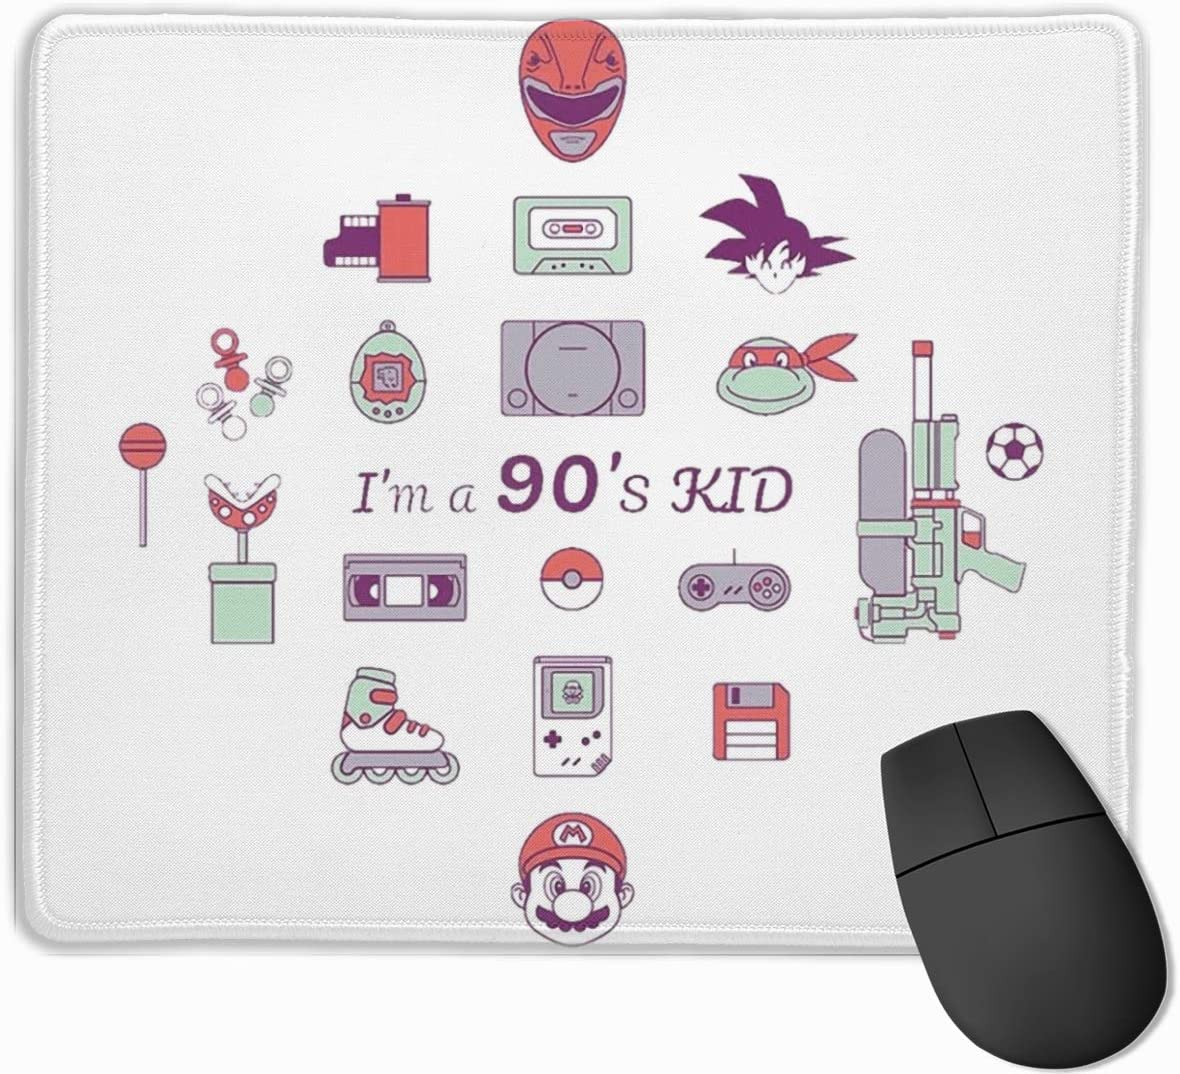 DAIPLY Ink Sprites Away Studio Ghibli Computer Laptop Mousepad Stitched Edge Gaming Mouse Pad 11.8x9.8